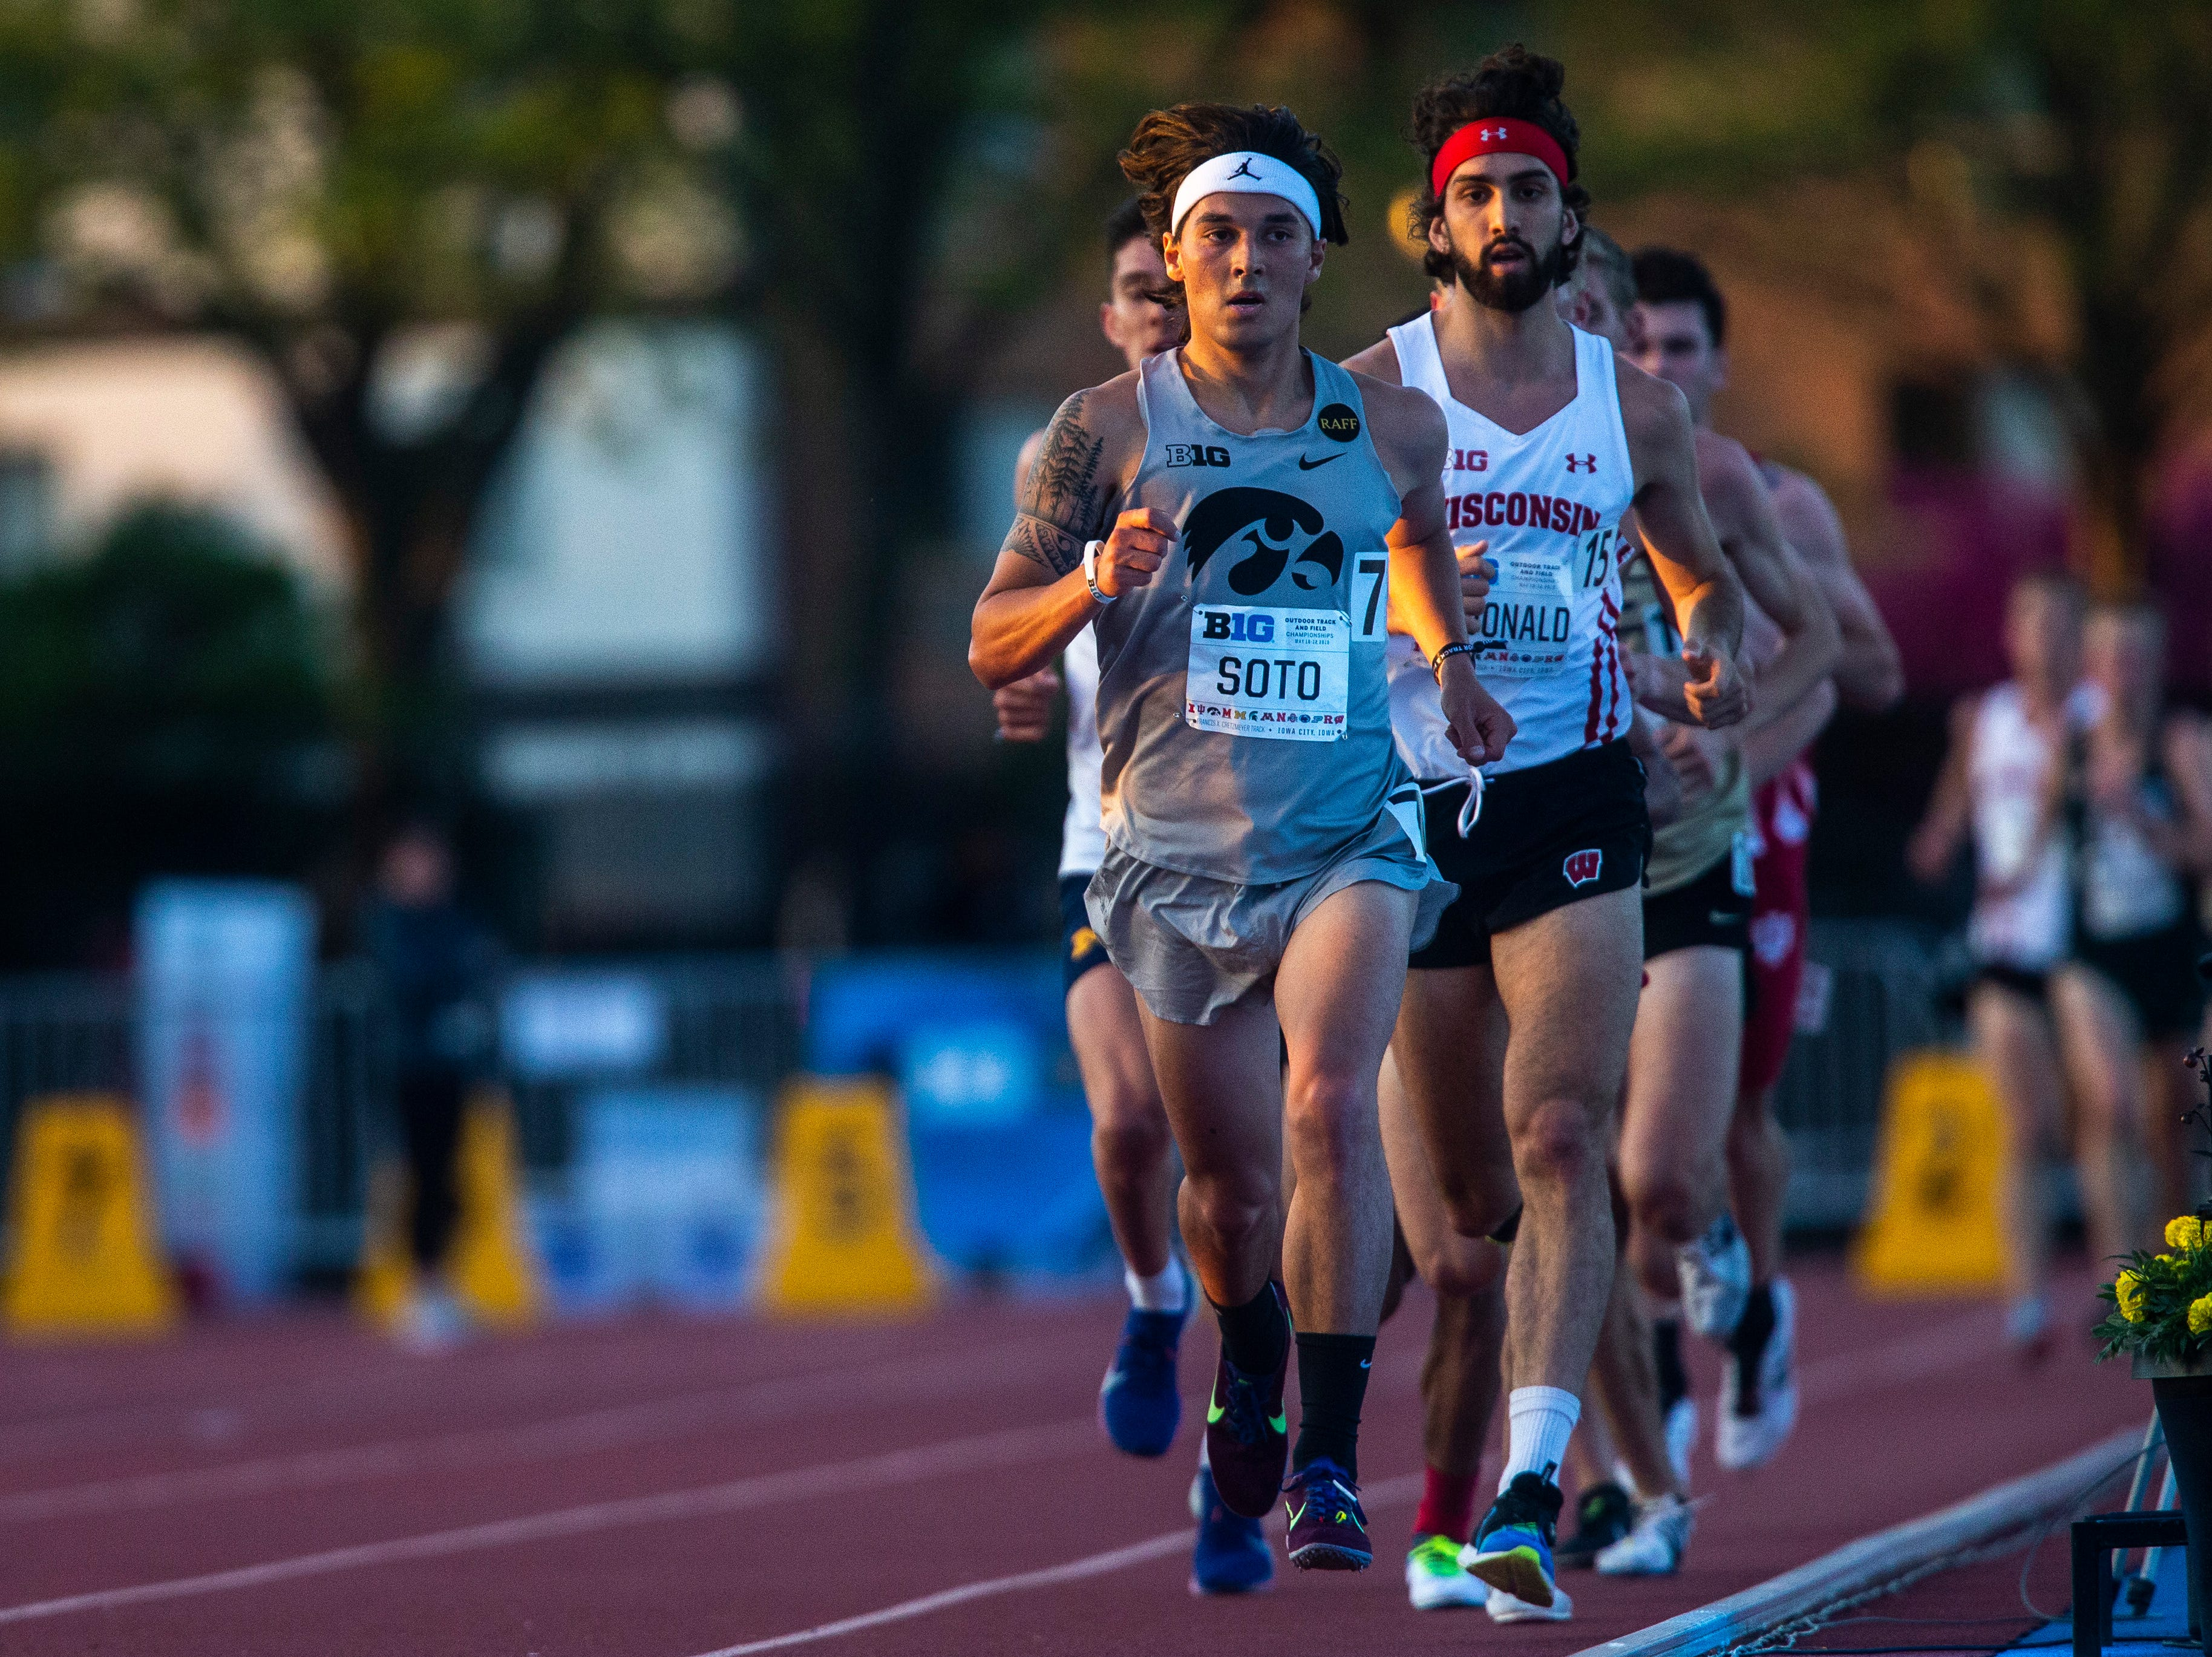 Iowa senior Daniel Soto, a West Des Moines Valley prep, leads the pack in the 10,000 meter during the first night of Big Ten track and field outdoor championships, Friday, May 10, 2019, at Francis X. Cretzmeyer Track on the University of Iowa campus in Iowa City, Iowa. Soto finished sixth, with a time of 29:44.40.